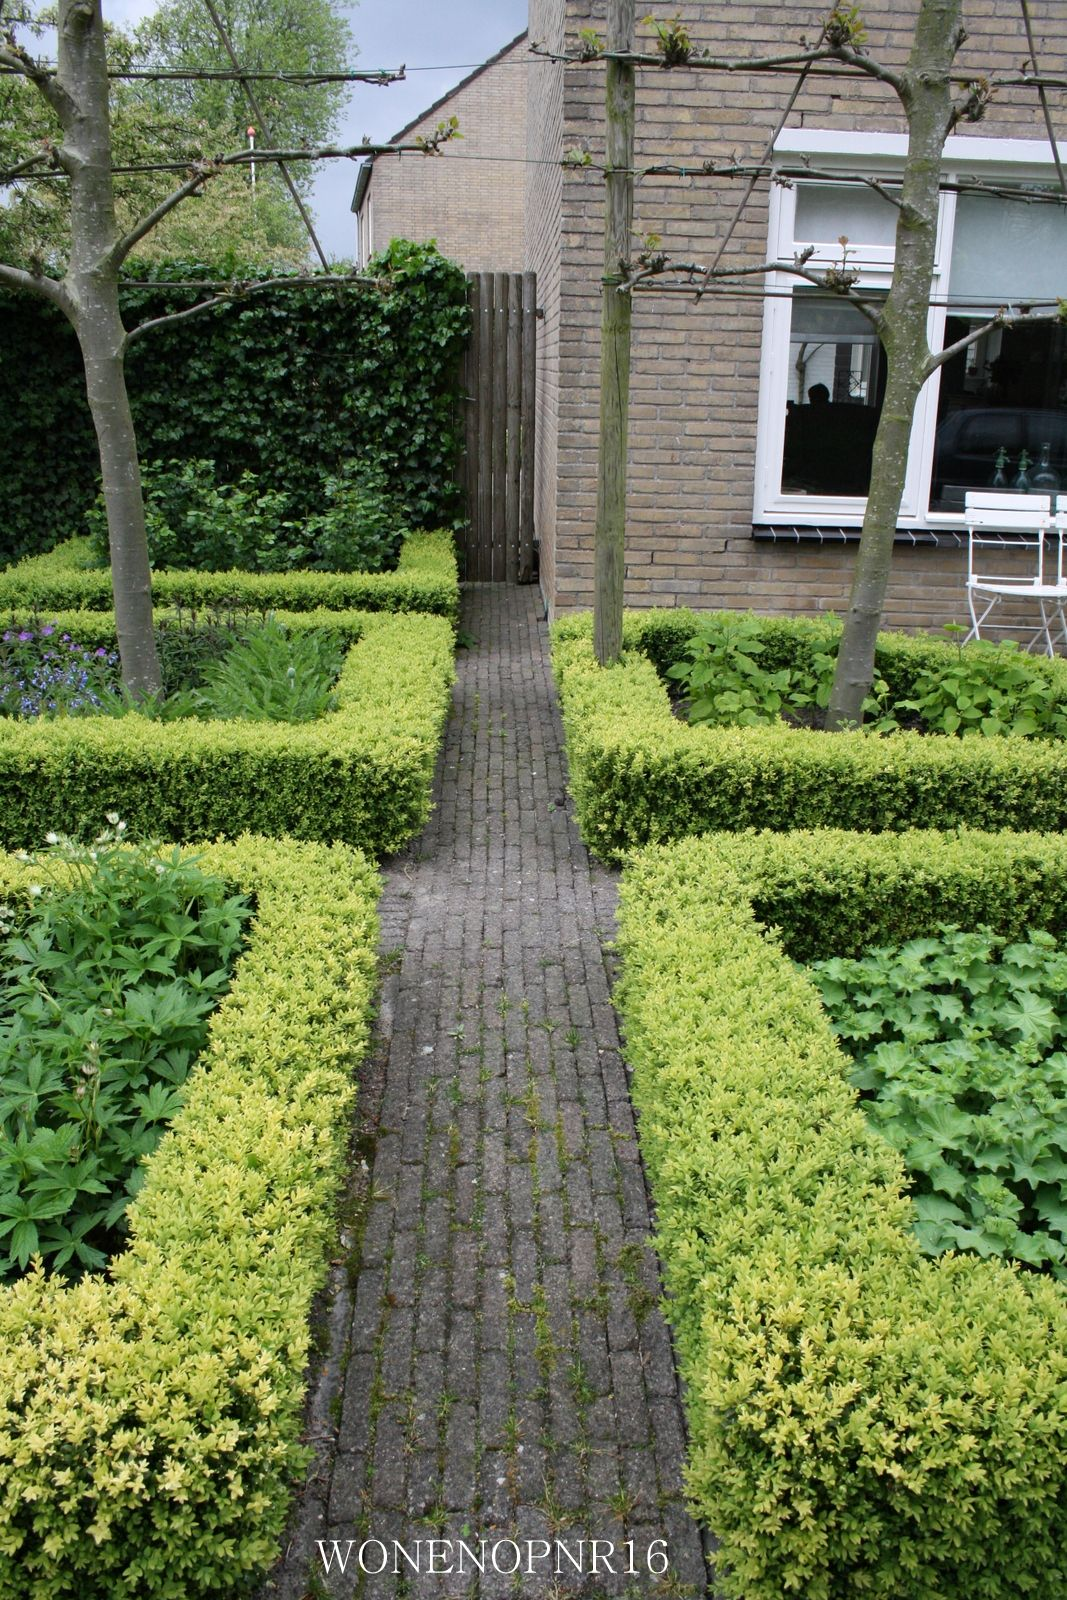 1000+ images about Tuin on Pinterest